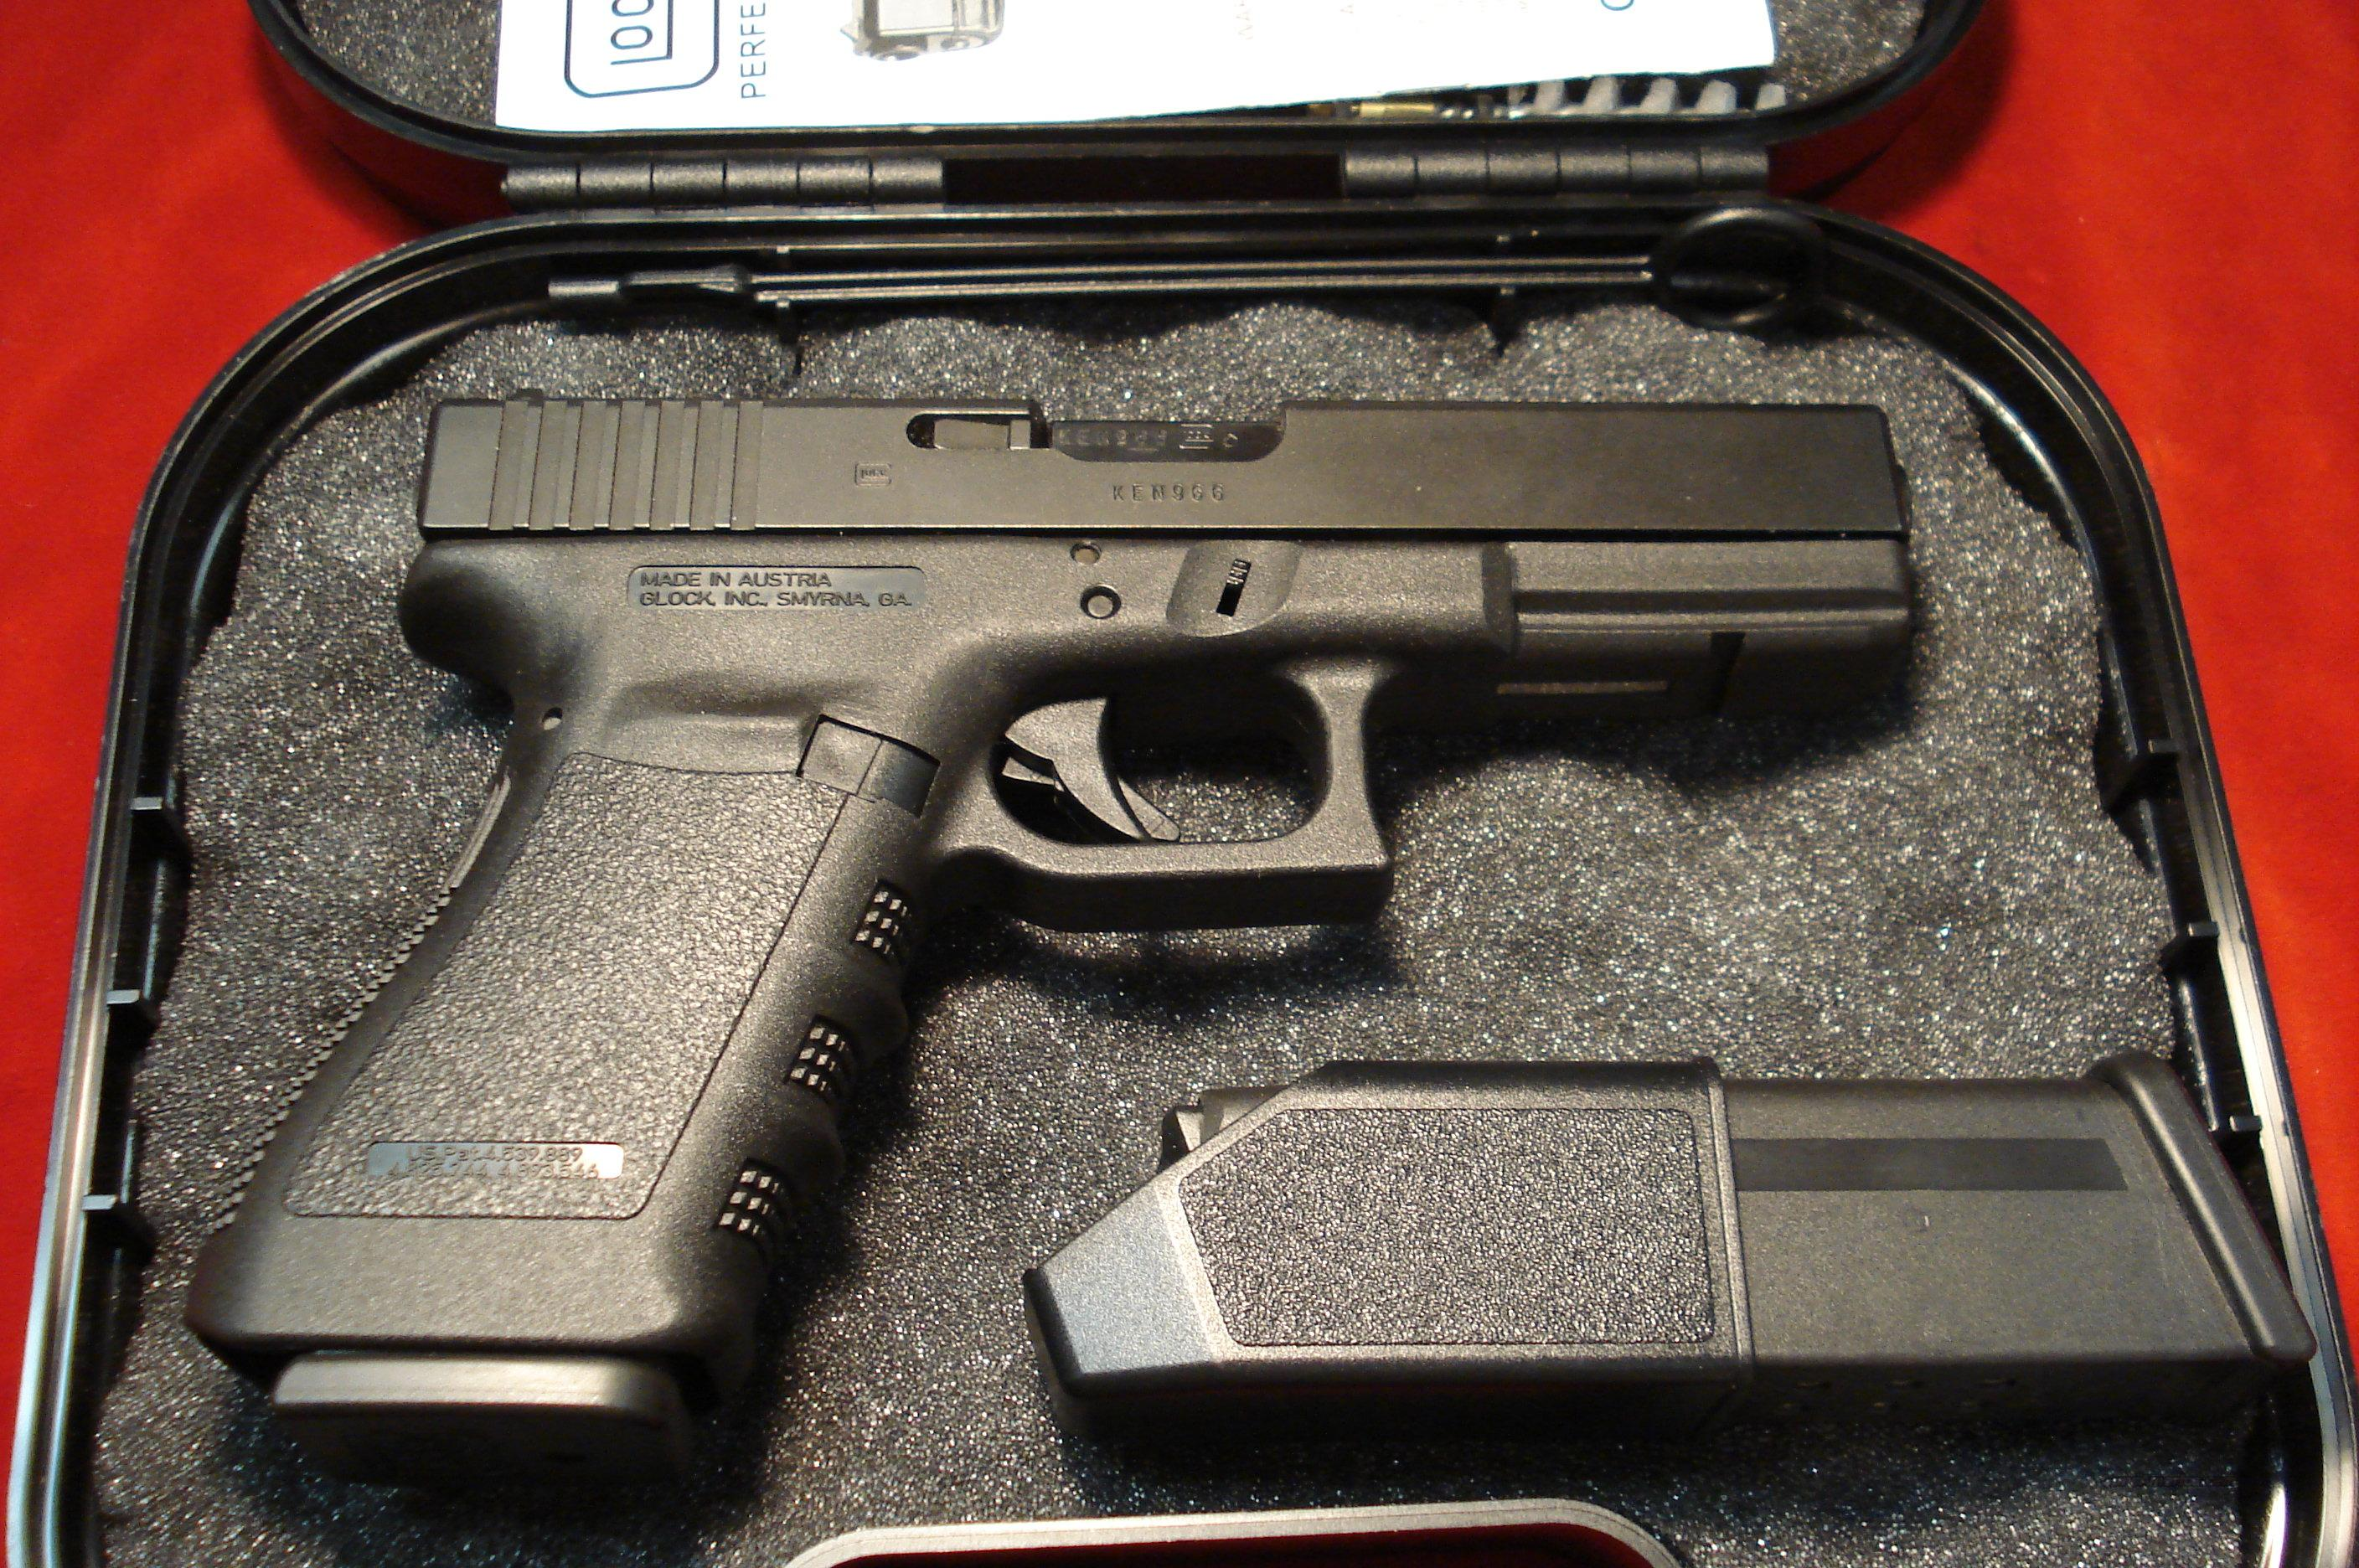 GLOCK MODEL 20 10MM HIGH CAP NEW  Guns > Pistols > Glock Pistols > 20/21